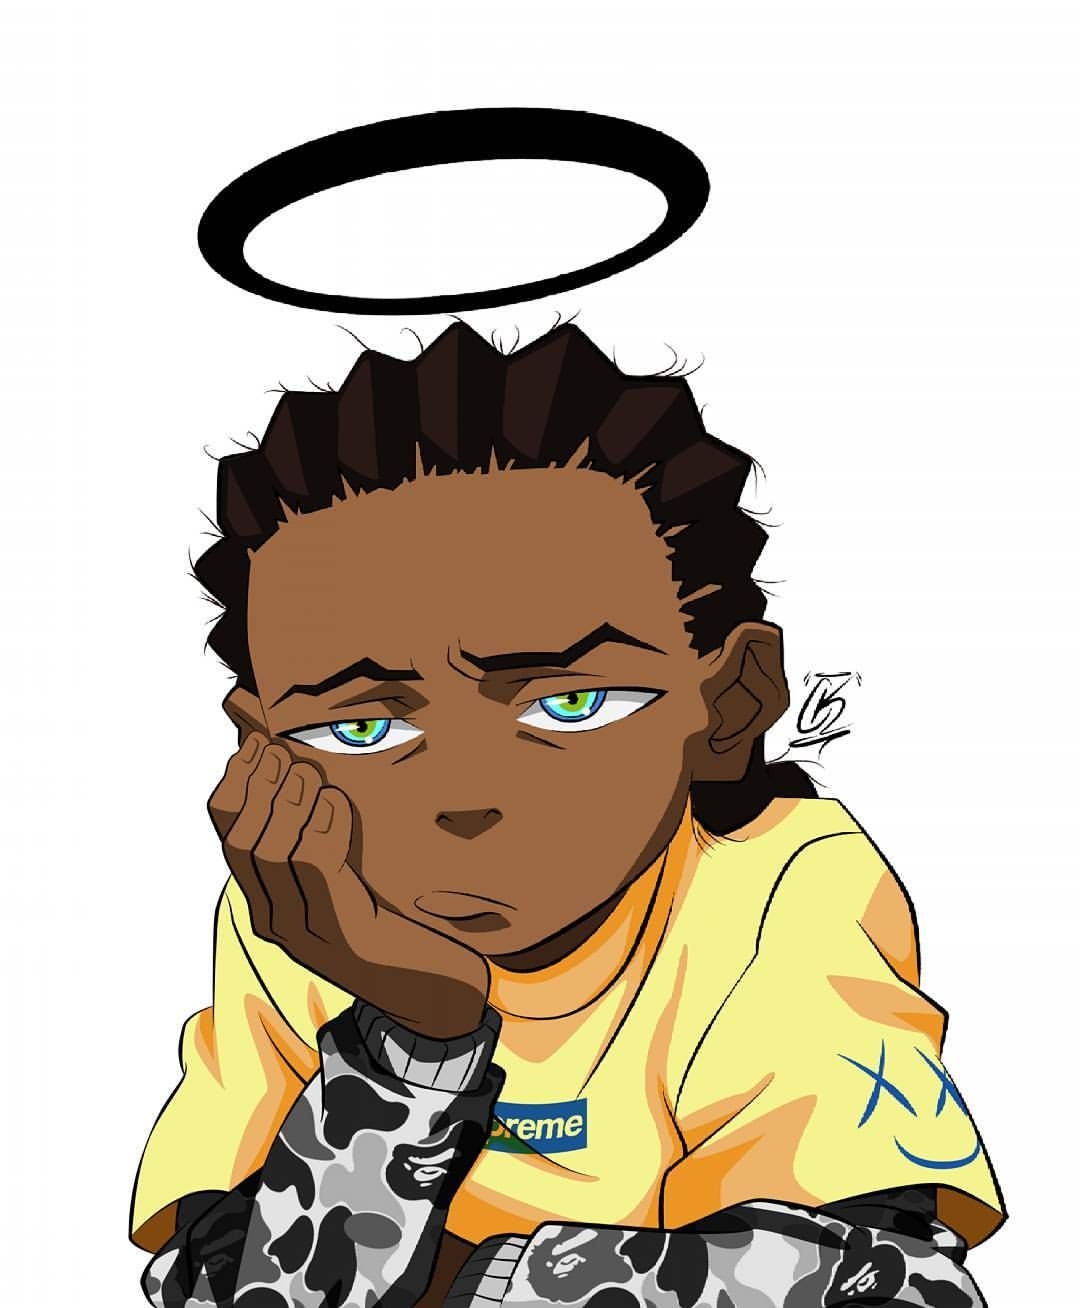 I might start slapping fools in the face just for living - Supreme boondocks ...